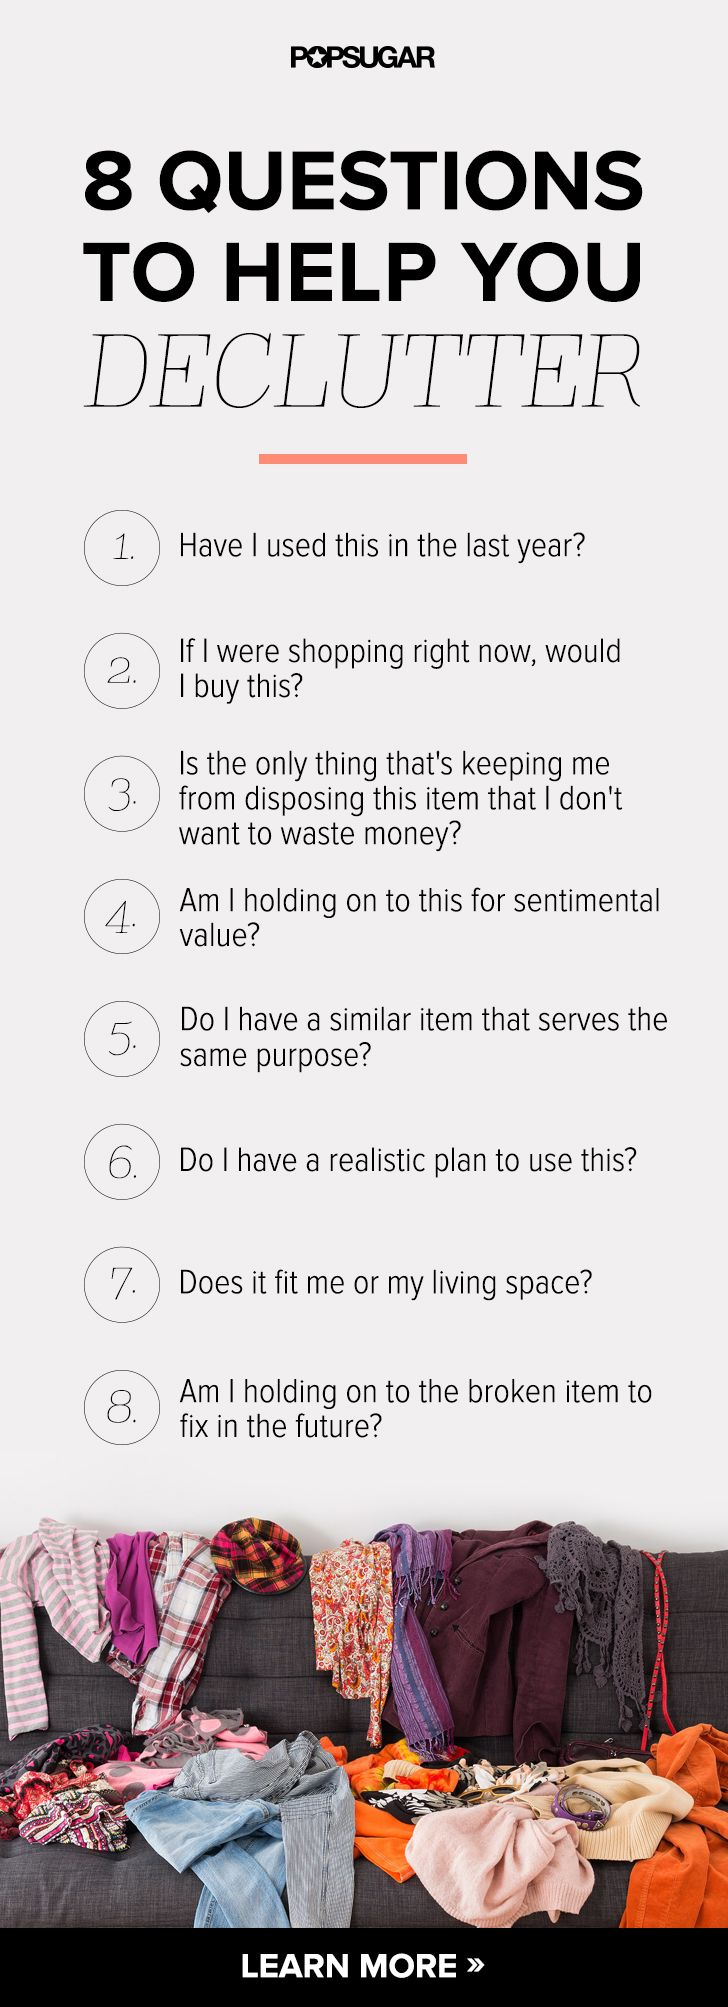 8 Questions to Ask Yourself to Help You Declutter